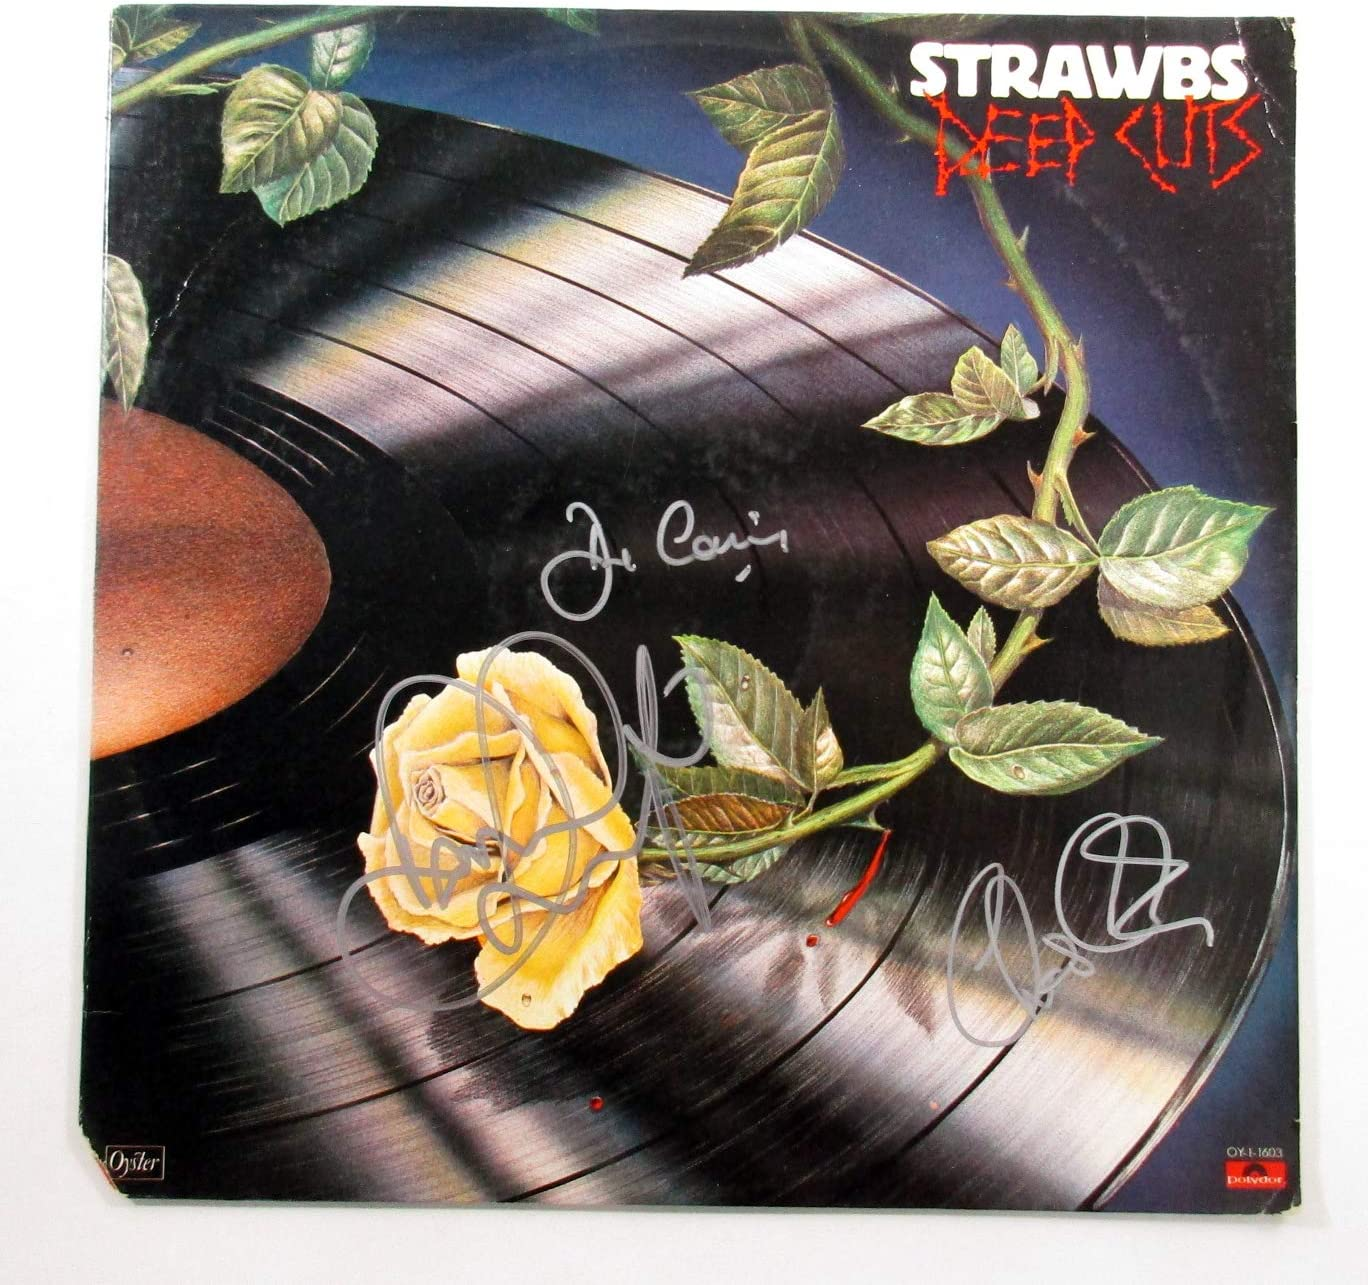 Dave Cousins and 2 famous More Signed Cuts Record Deep Max 71% OFF Album LP Strawbs